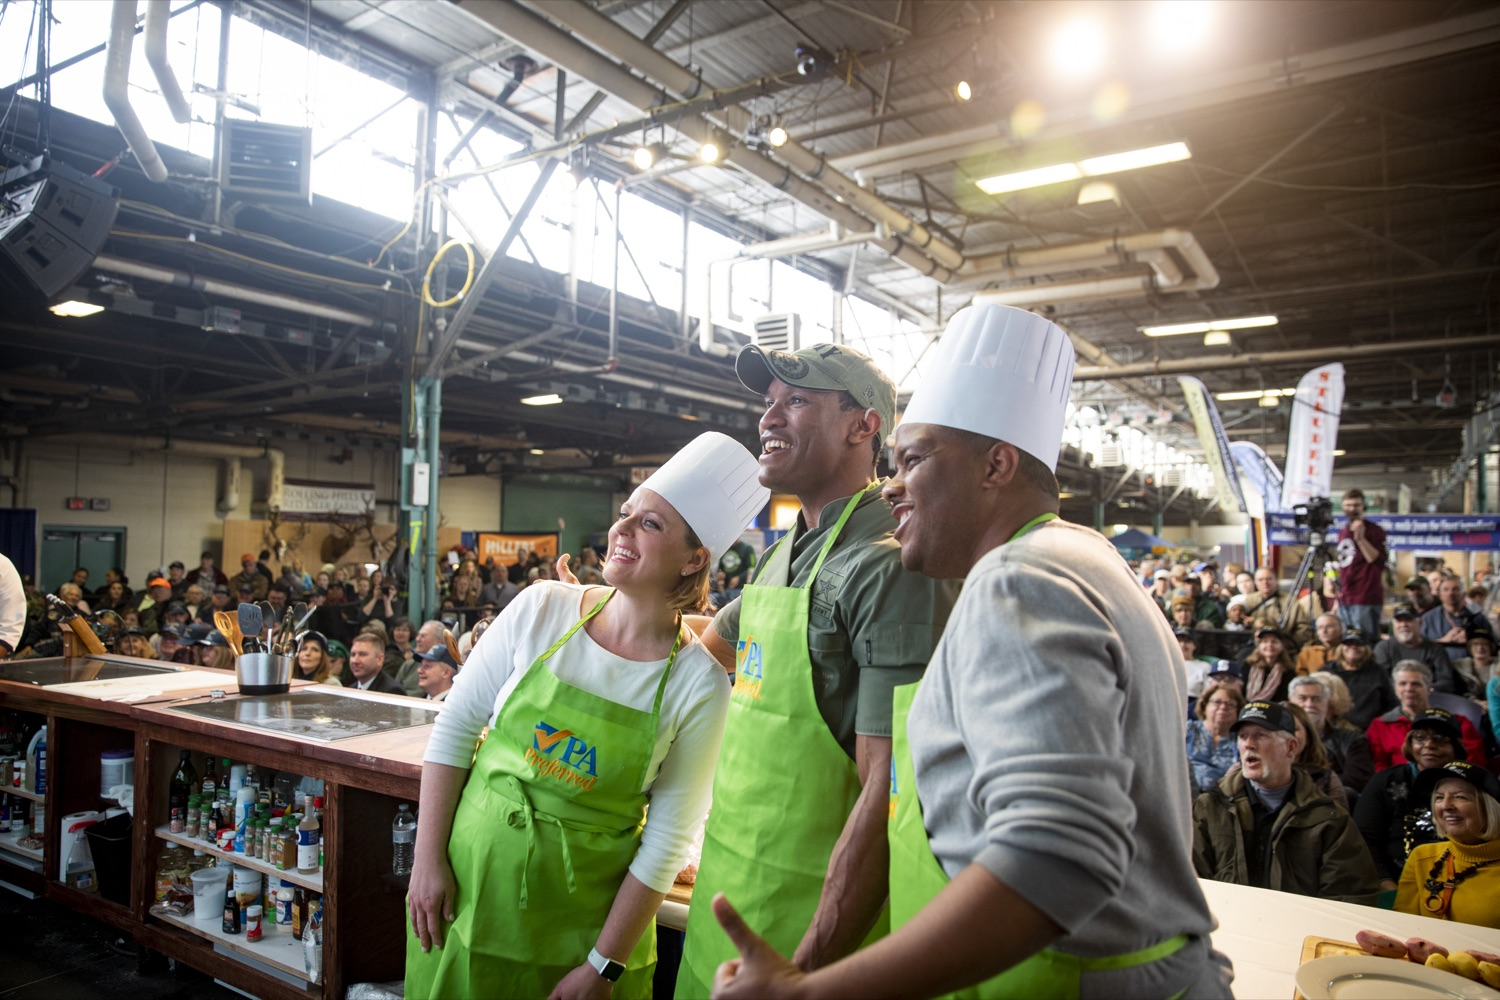 """<a href=""""http://filesource.abacast.com/commonwealthofpa/photo/17651_AGRIC_ARMY_NAVY_COOKOFF_CZ_15.jpg"""" target=""""_blank"""">⇣Download Photo<br></a>Sergeant Pete O. Linton poses with Sous Chefs Ali Lanyon and James Crumble of ABC27 News at the 2020 Army vs. Navy Cook-Off in Harrisburg on January 9, 2020."""